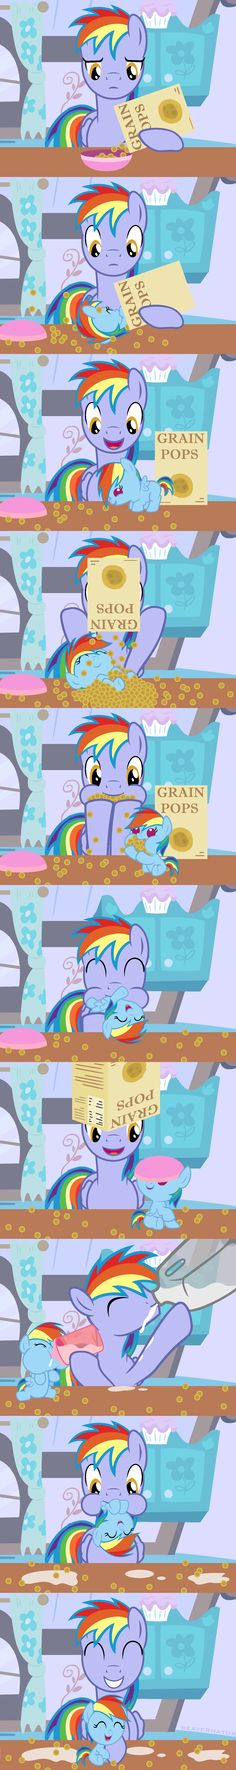 Rainbow Dad's Average Morning by Beavernator.deviantart.com on @deviantART